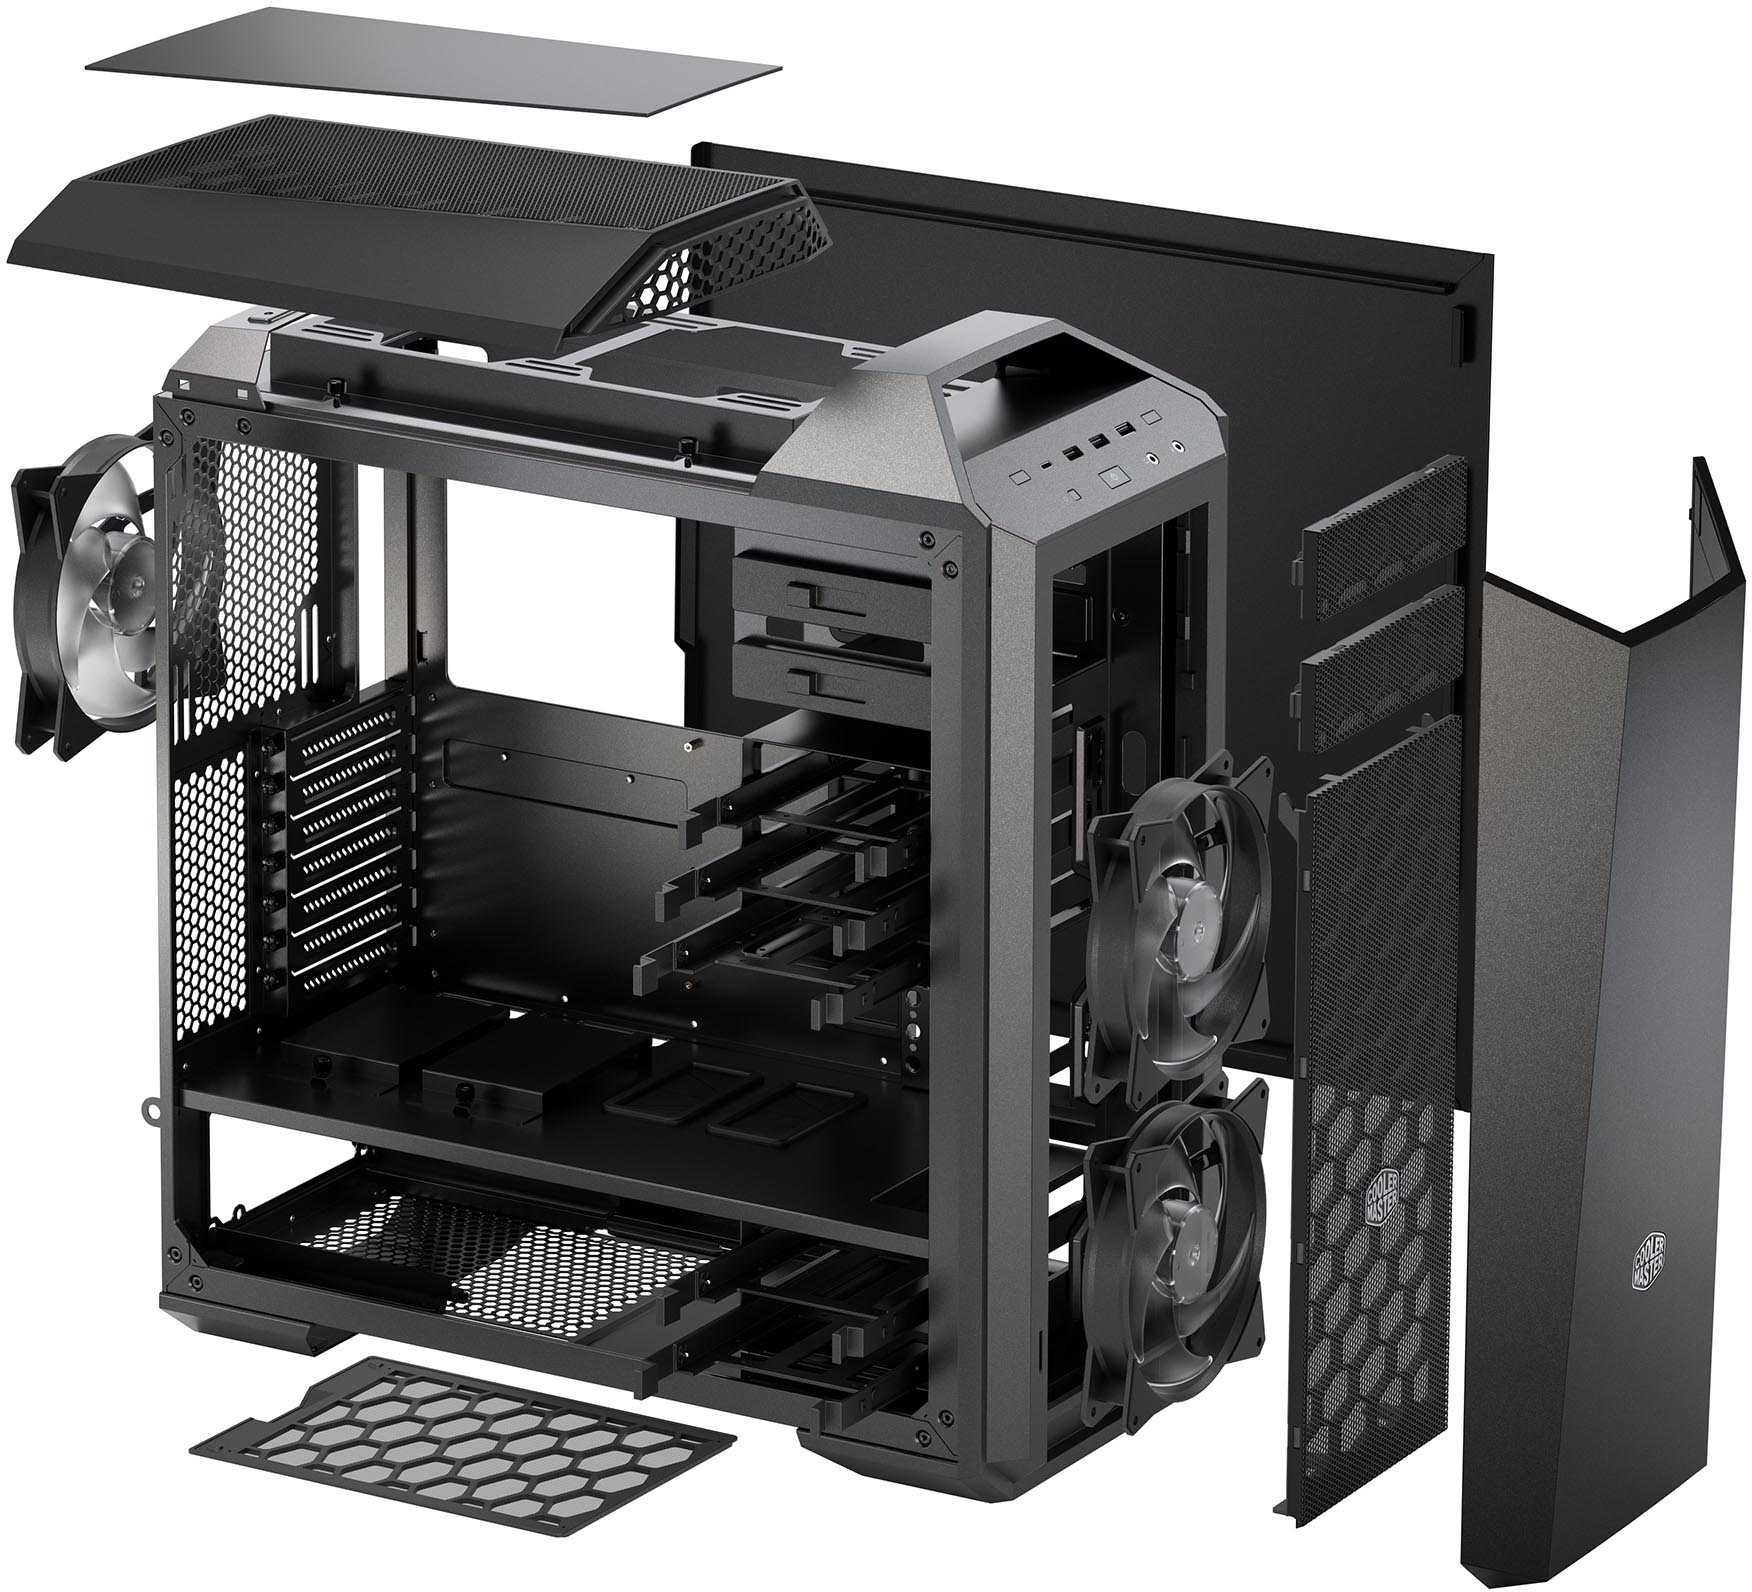 Cooler Master MasterCase Maker 5 Exploded Diagram cooler master ces 2016 modular chassis and psu, peripherals Walk-In Cooler Refrigeration Diagrams at gsmx.co